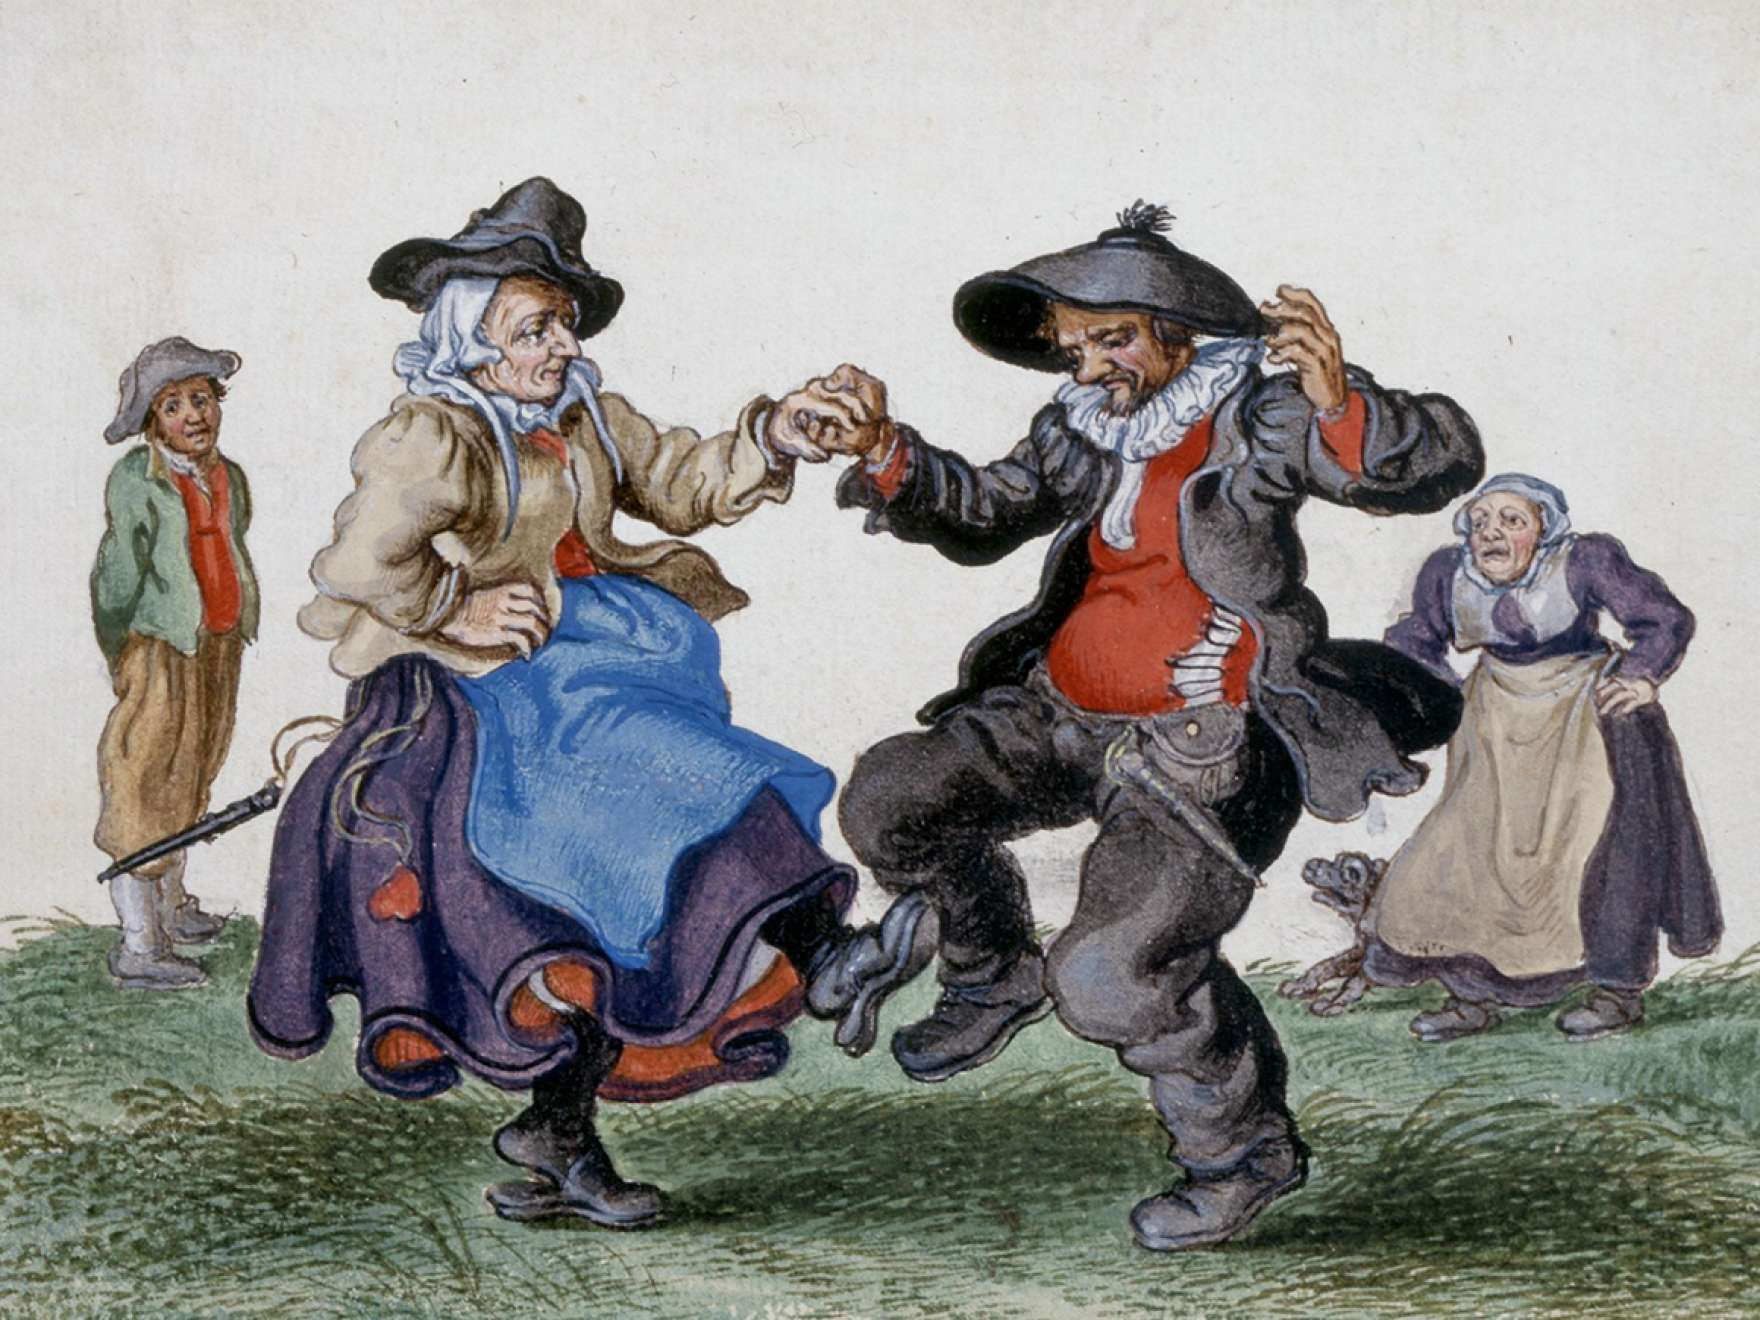 Adriaen Van De Venne, (Watercolor) An Old Peasant Couple Dancing, 1625